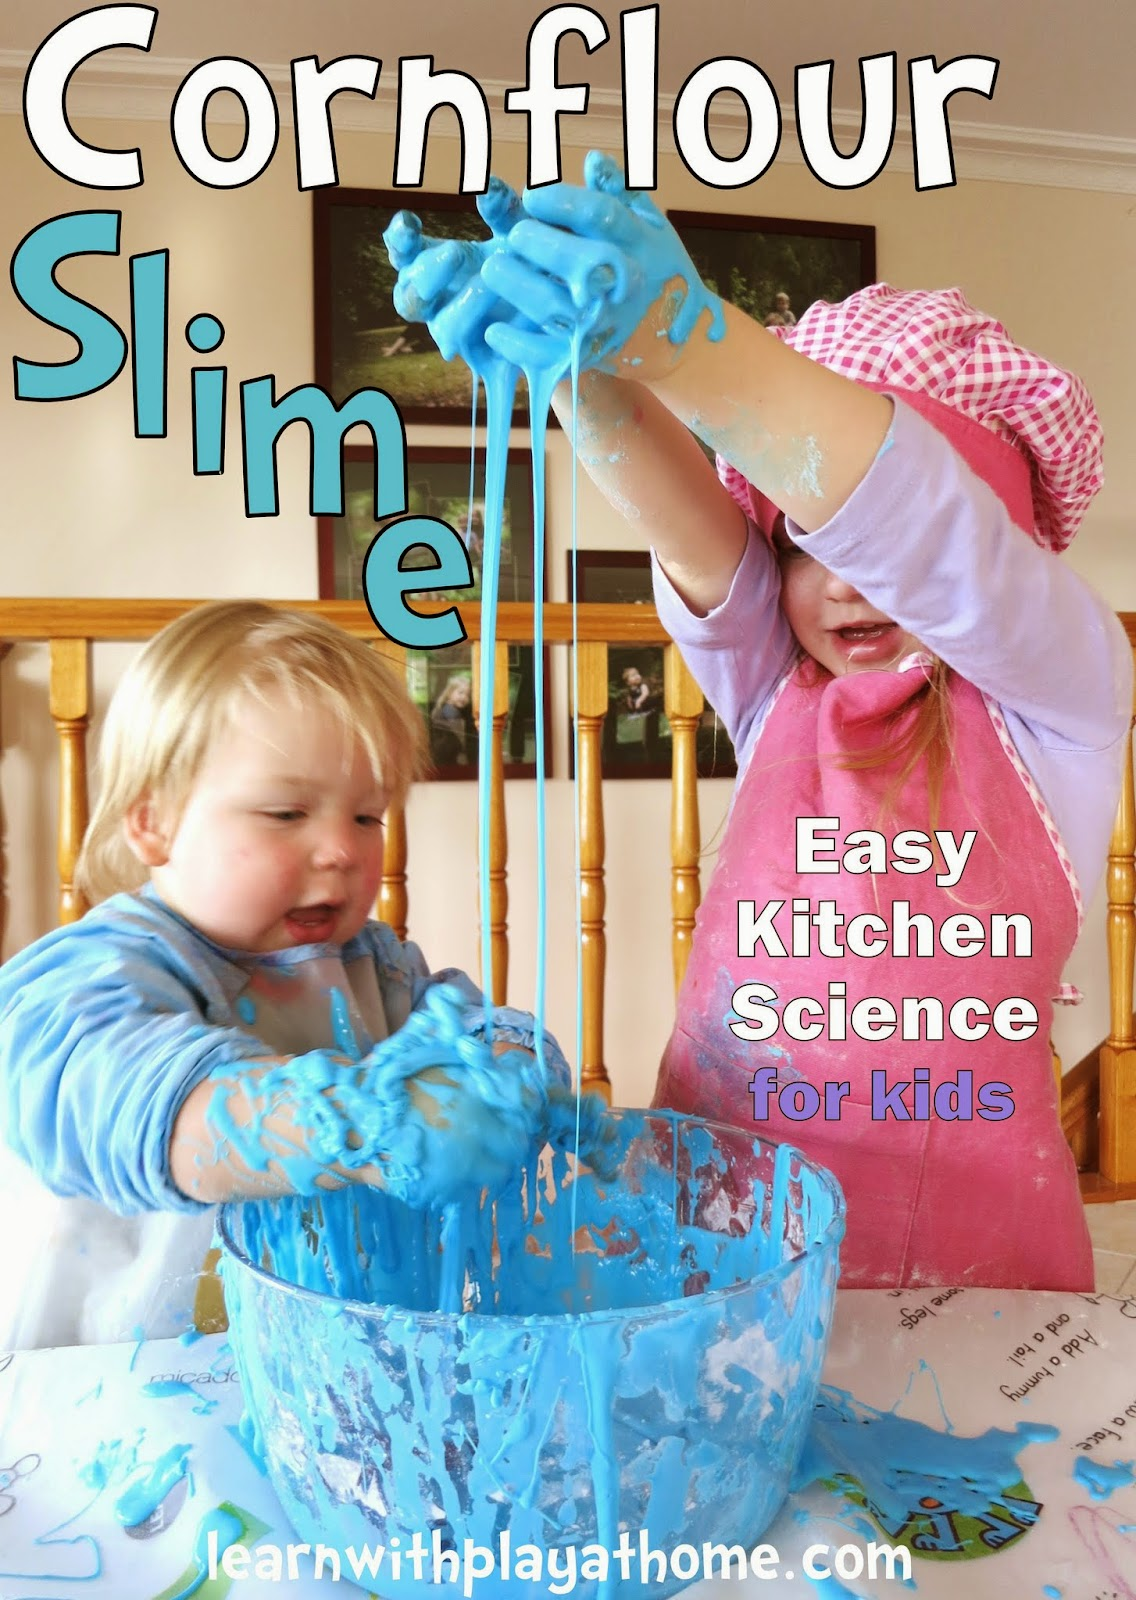 Learn with play at home cornflour slime how to make and what not aug 8 2013 ccuart Images